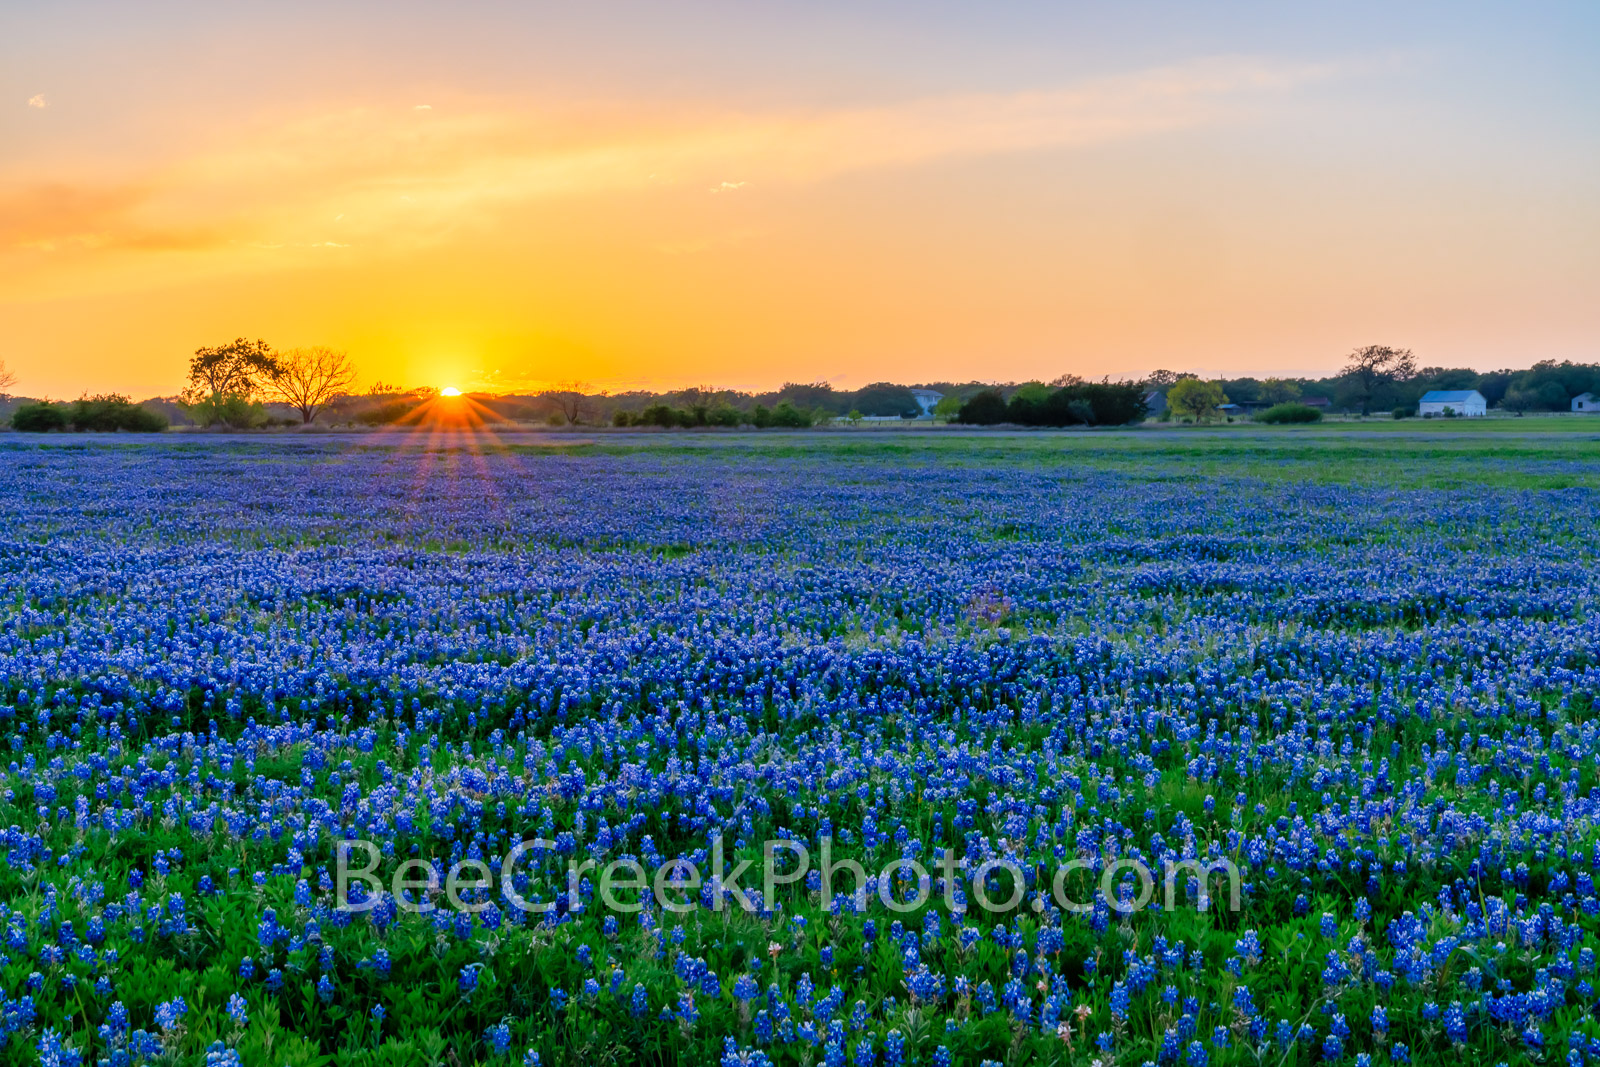 Golden Glow over Bluebonnet Landscape - Texas Wildflowers - We have been hoping that this farmland in the Texas hill country...